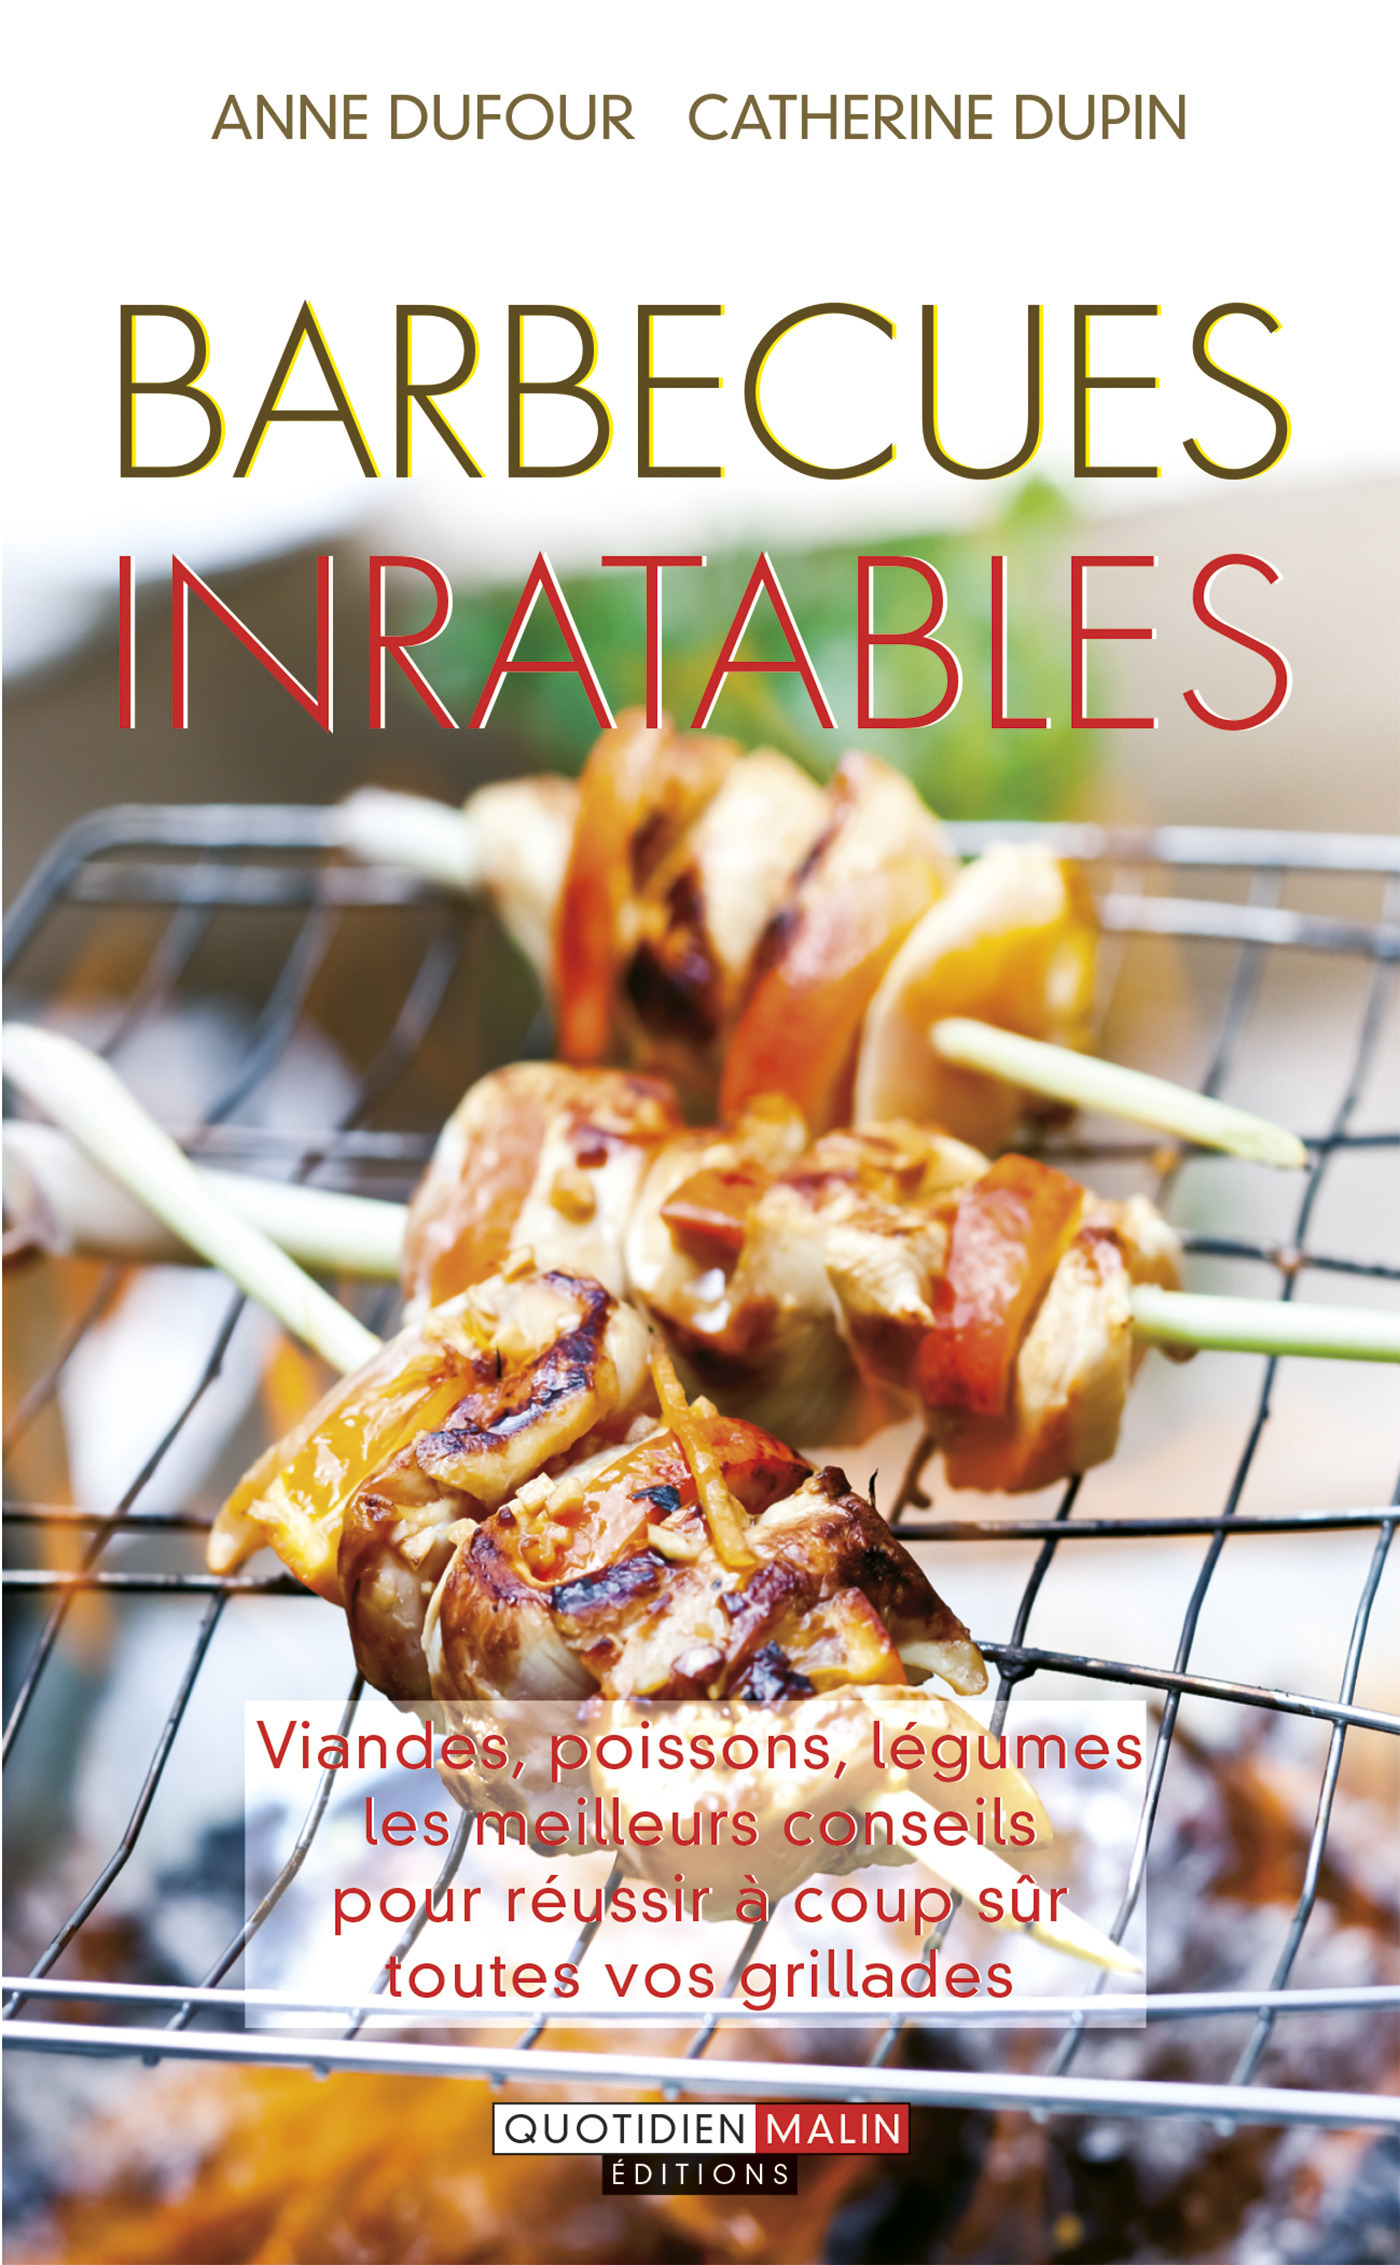 Barbecues inratables